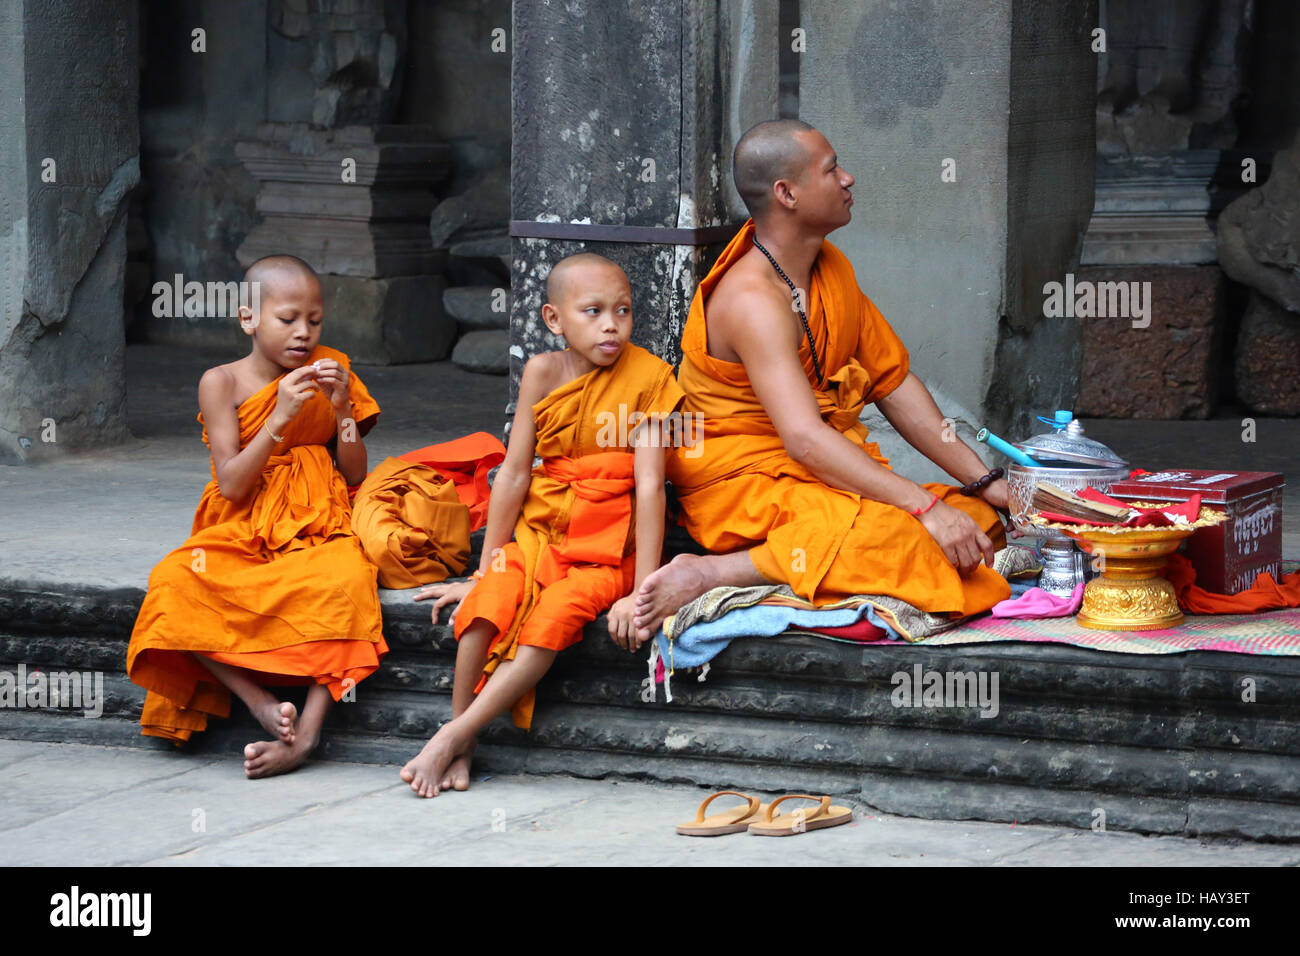 Young Buddhist monks at Angkor Wat Temple in Siem Reap, Cambodia - Stock Image